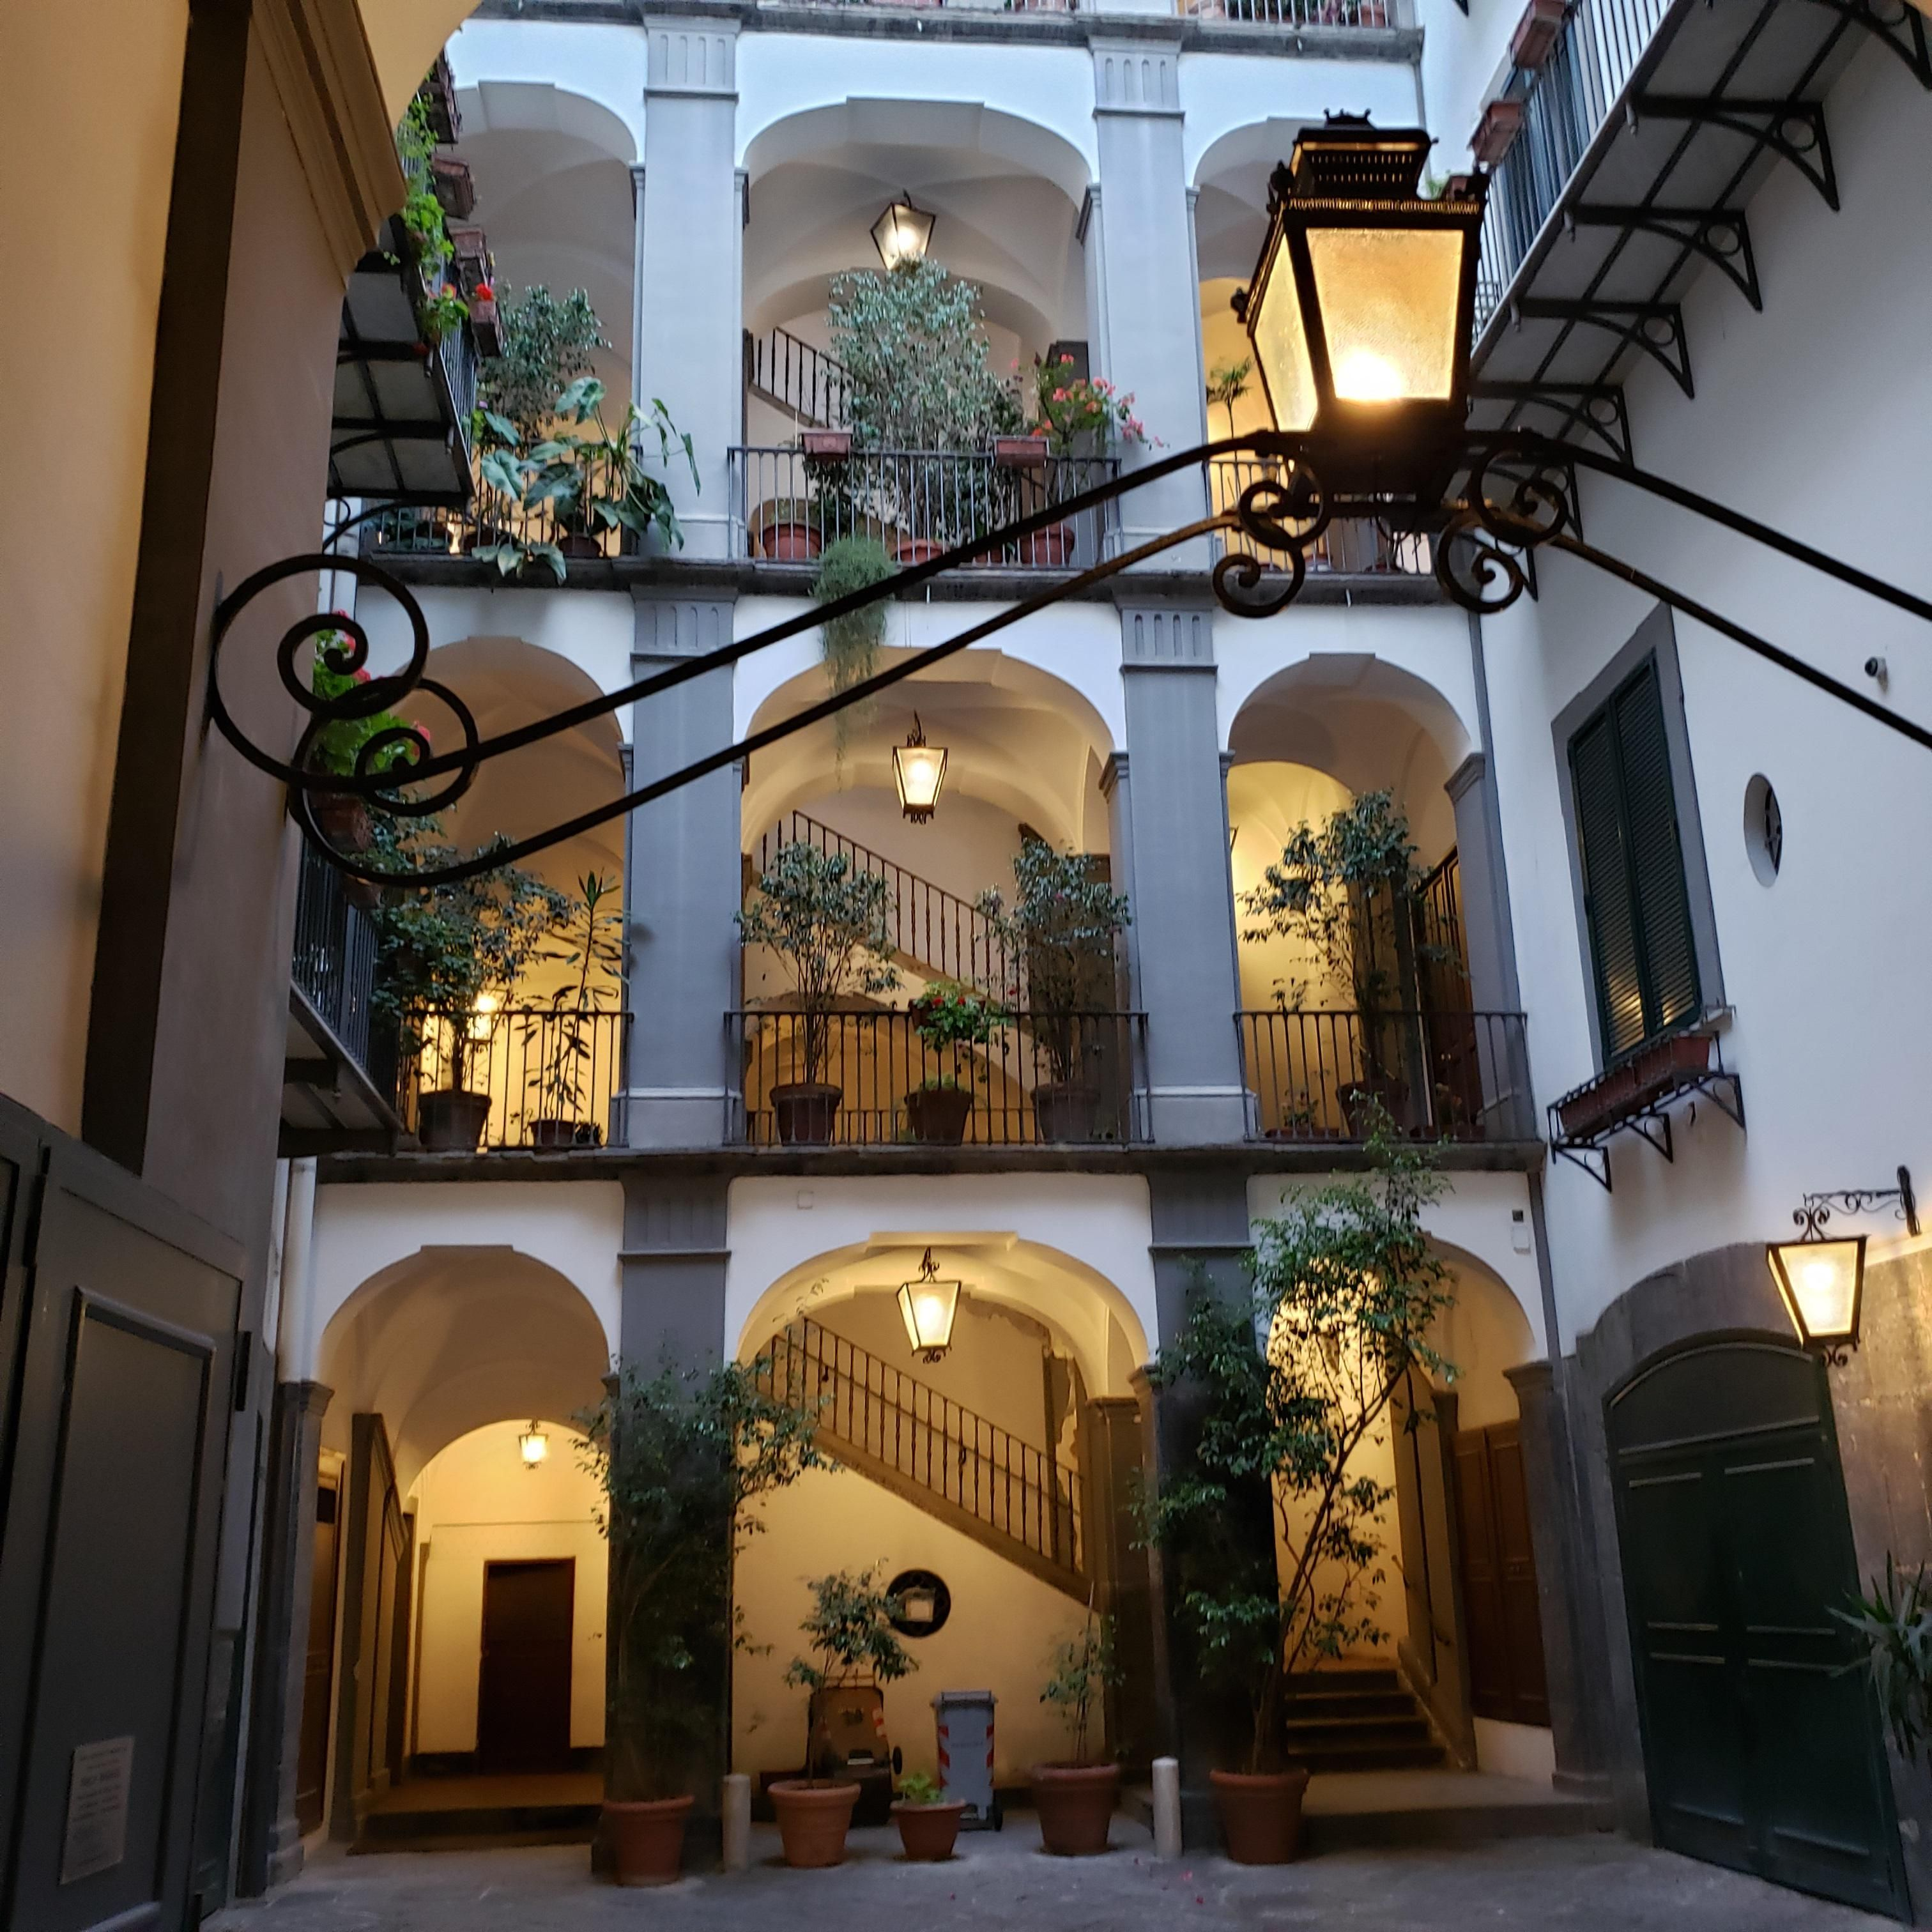 This cozy courtyard in the spanish quarter in Naples Italy Check out desigedecors.com to get more inspiration #interiordesign #cozyplace #rustic #homedecoration